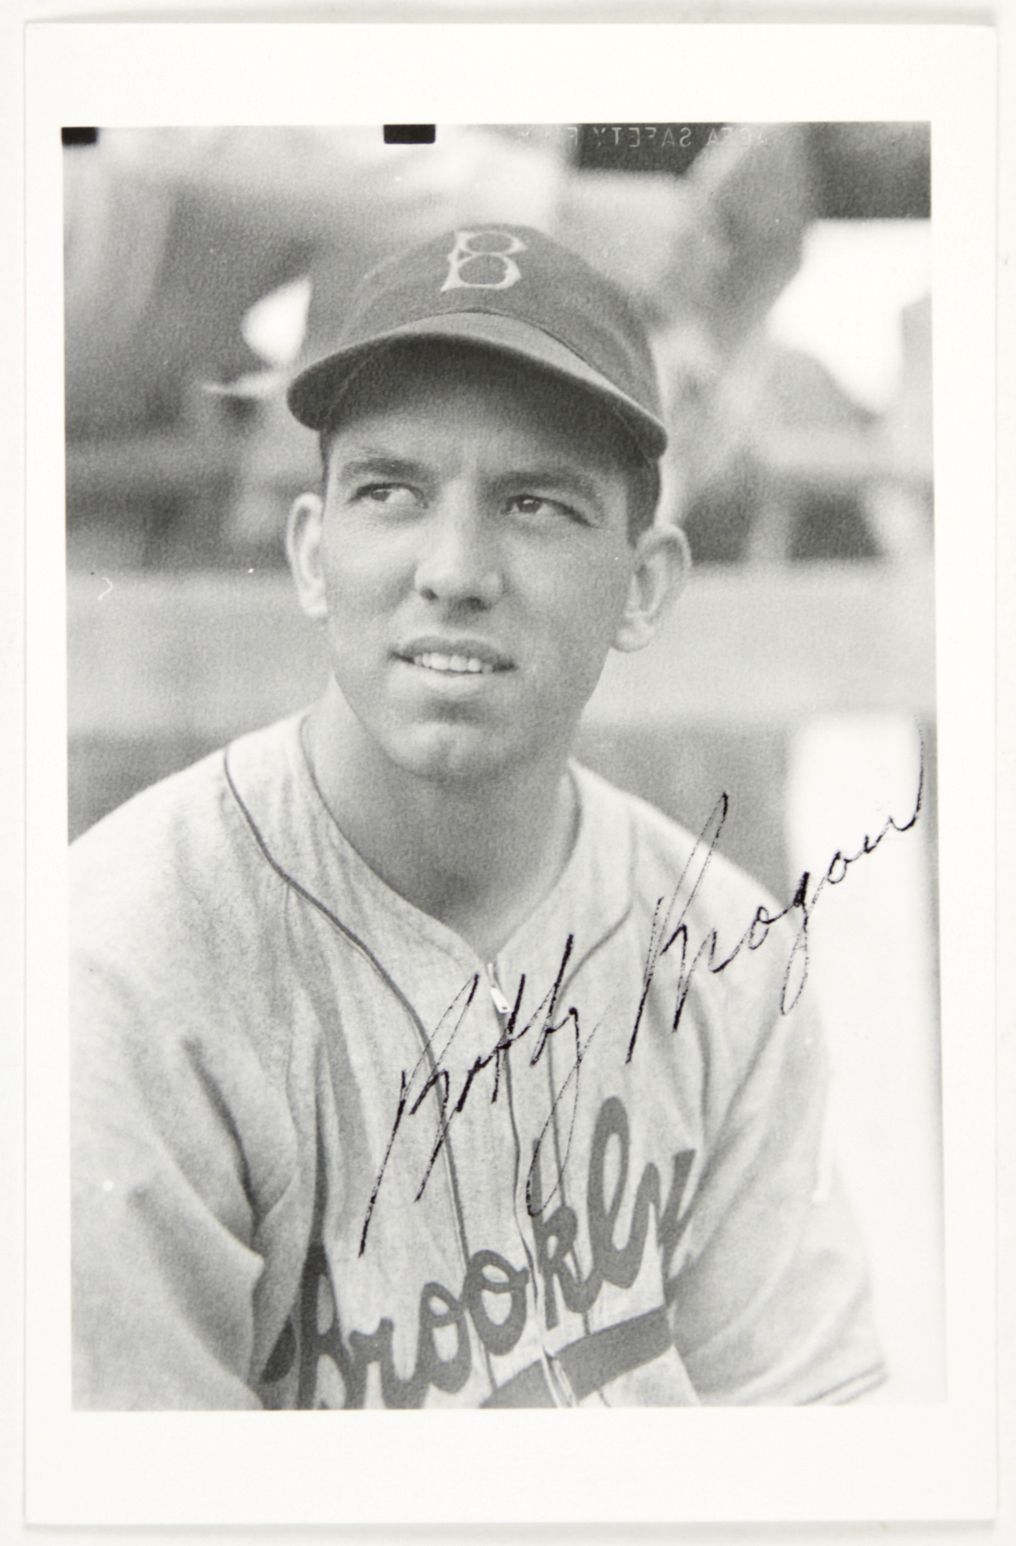 winning bobby bragan essays Bobby bragan as a player robert randall bragan ( born october 30, 1917 in birmingham, alabama † january 21, 2010 in fort worth, texas) was an american shortstop, catcher, baseball manager and coach in major league baseball.